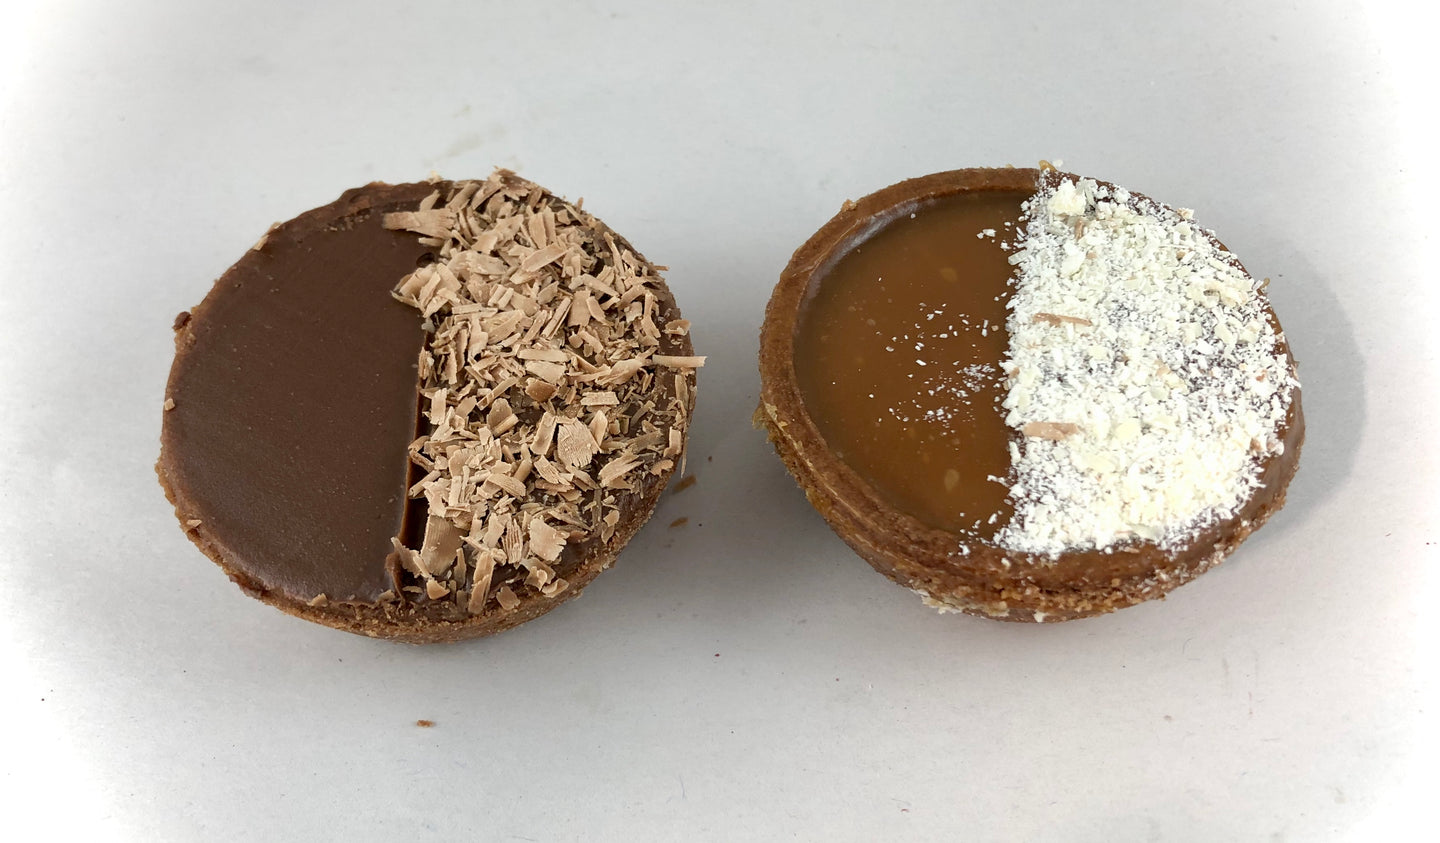 Caramel or Nutella tarts